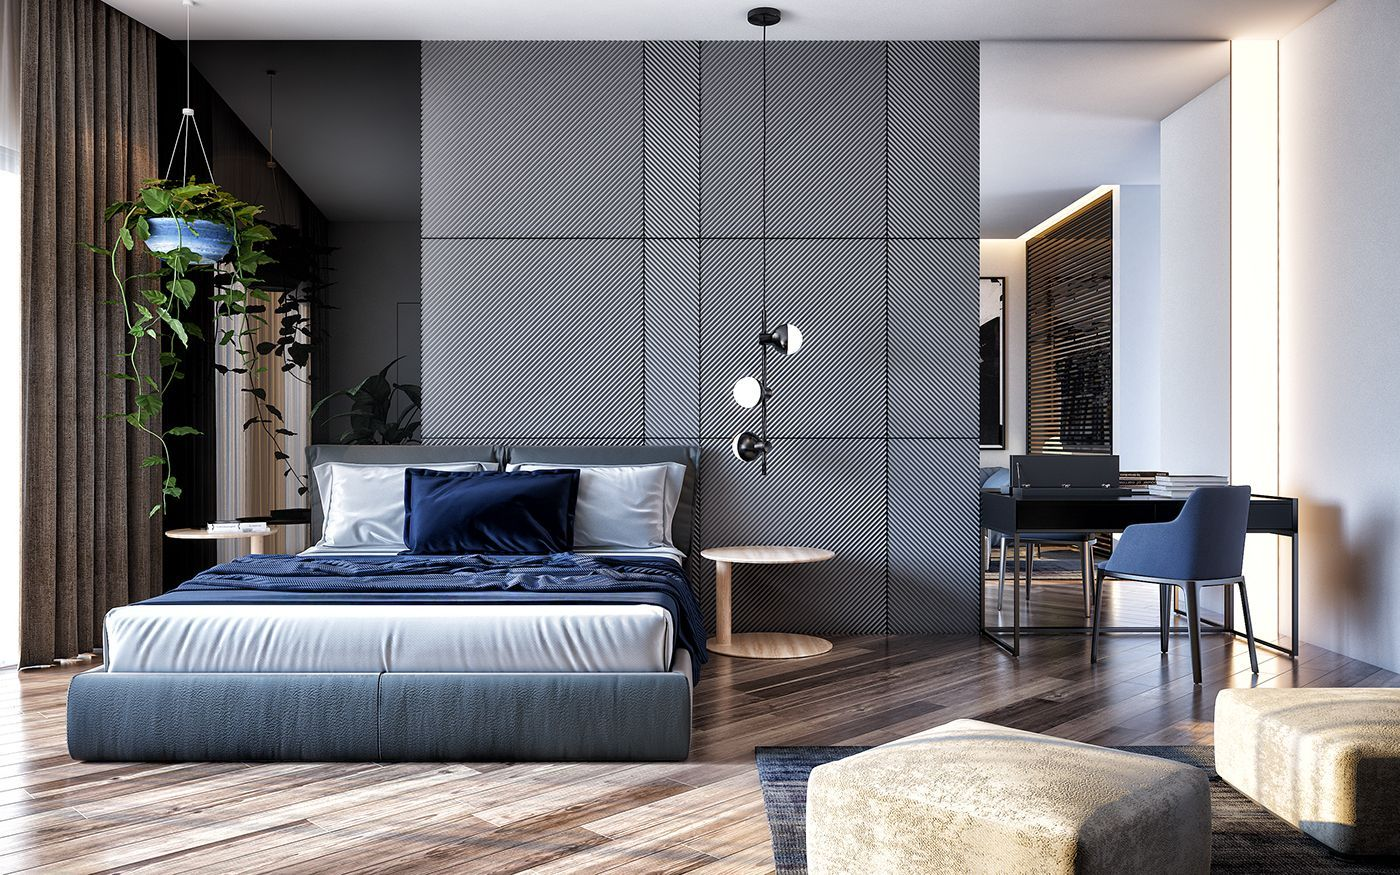 30 Great Modern Bedroom Design Ideas Update 08 2017 With